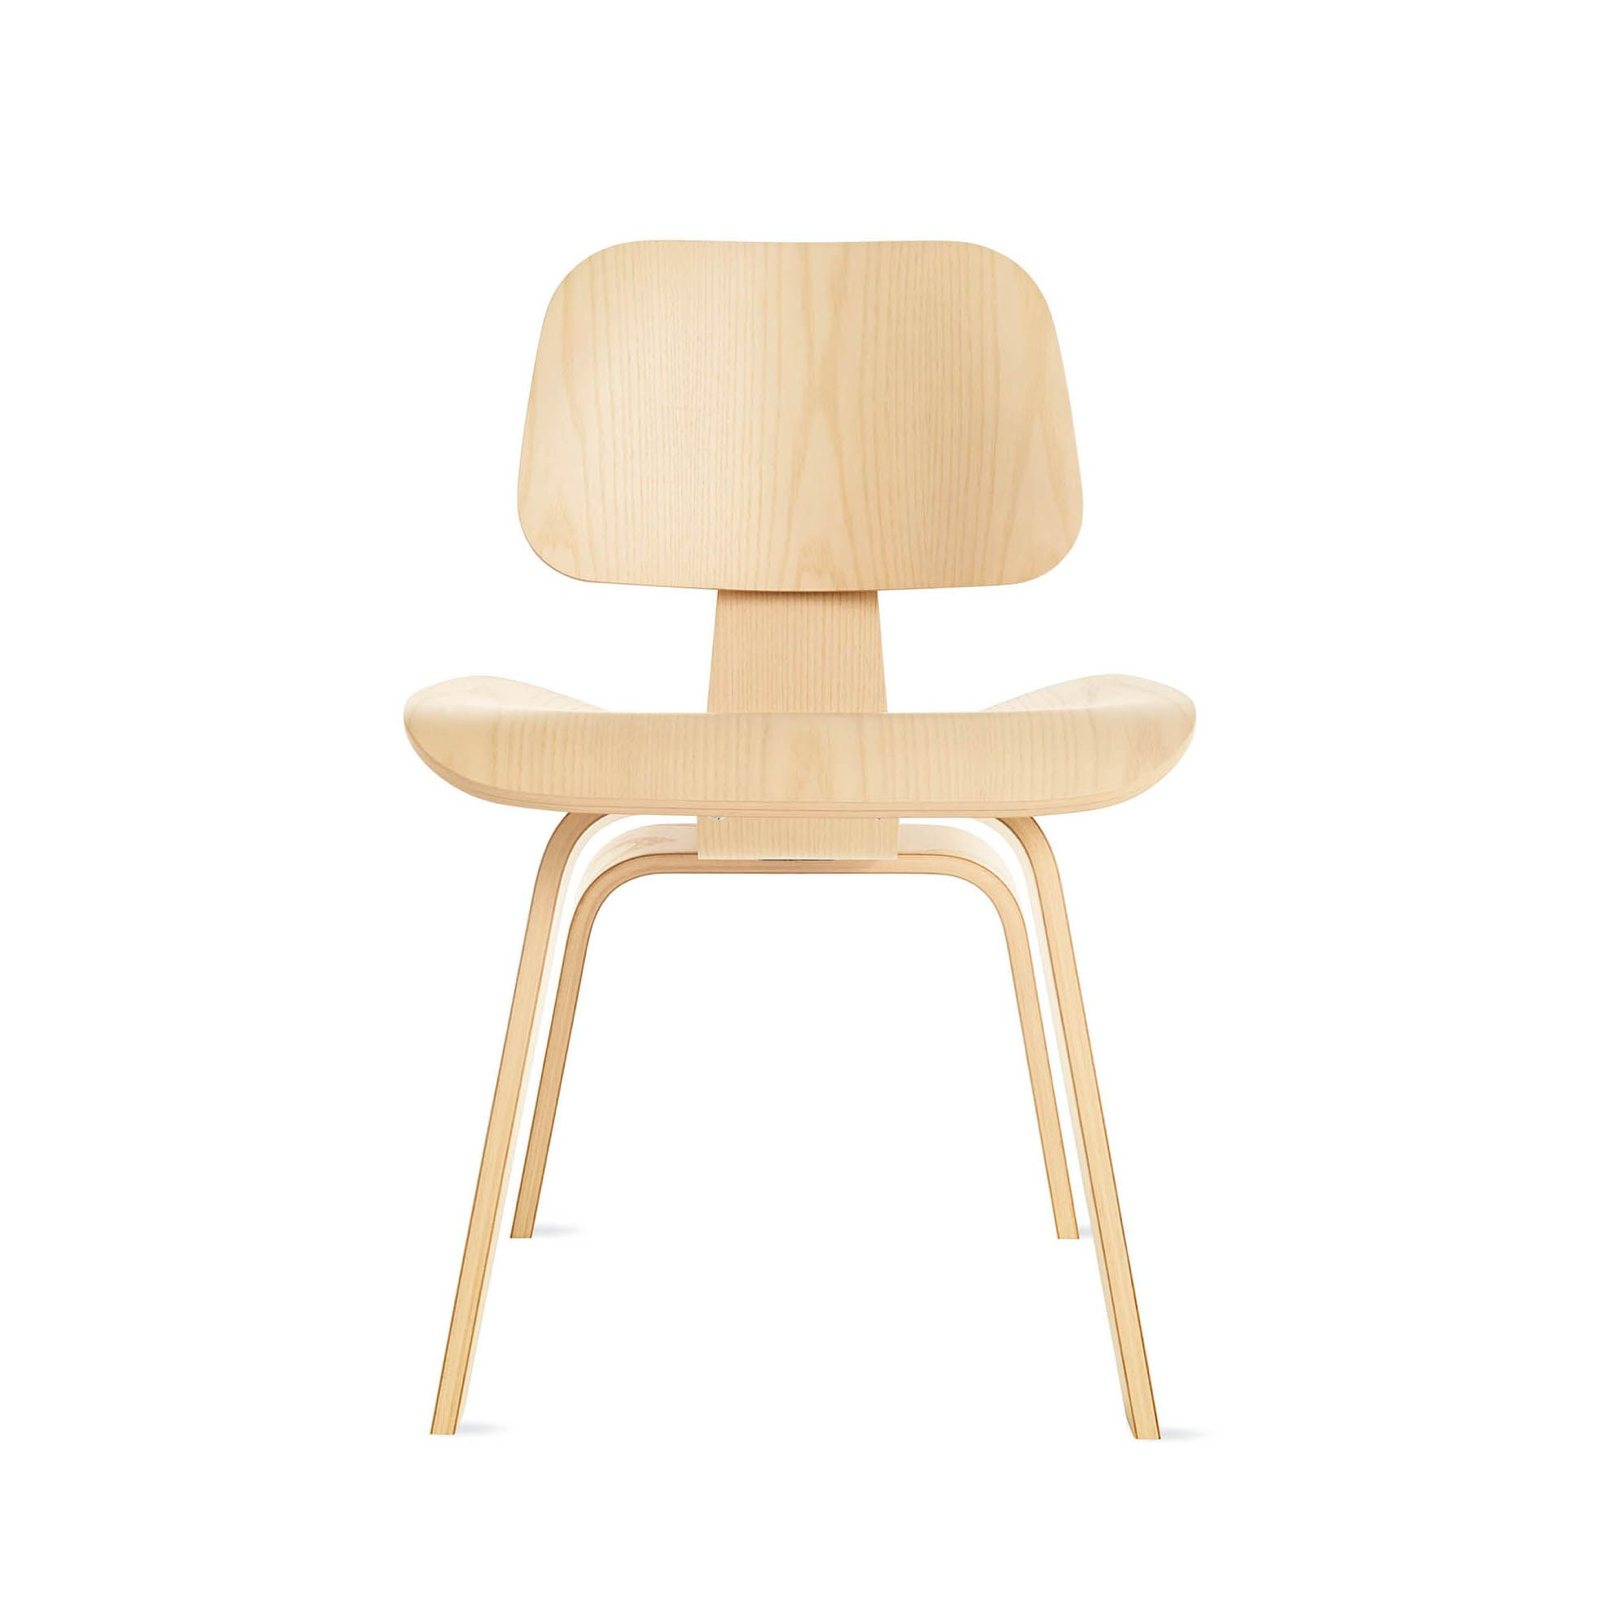 Eames Molded Plywood Dining Chair Wood Base by Charles  : eames molded plywood dining chair wood base 6 24082 from upinteriors.com size 1600 x 1600 jpeg 59kB